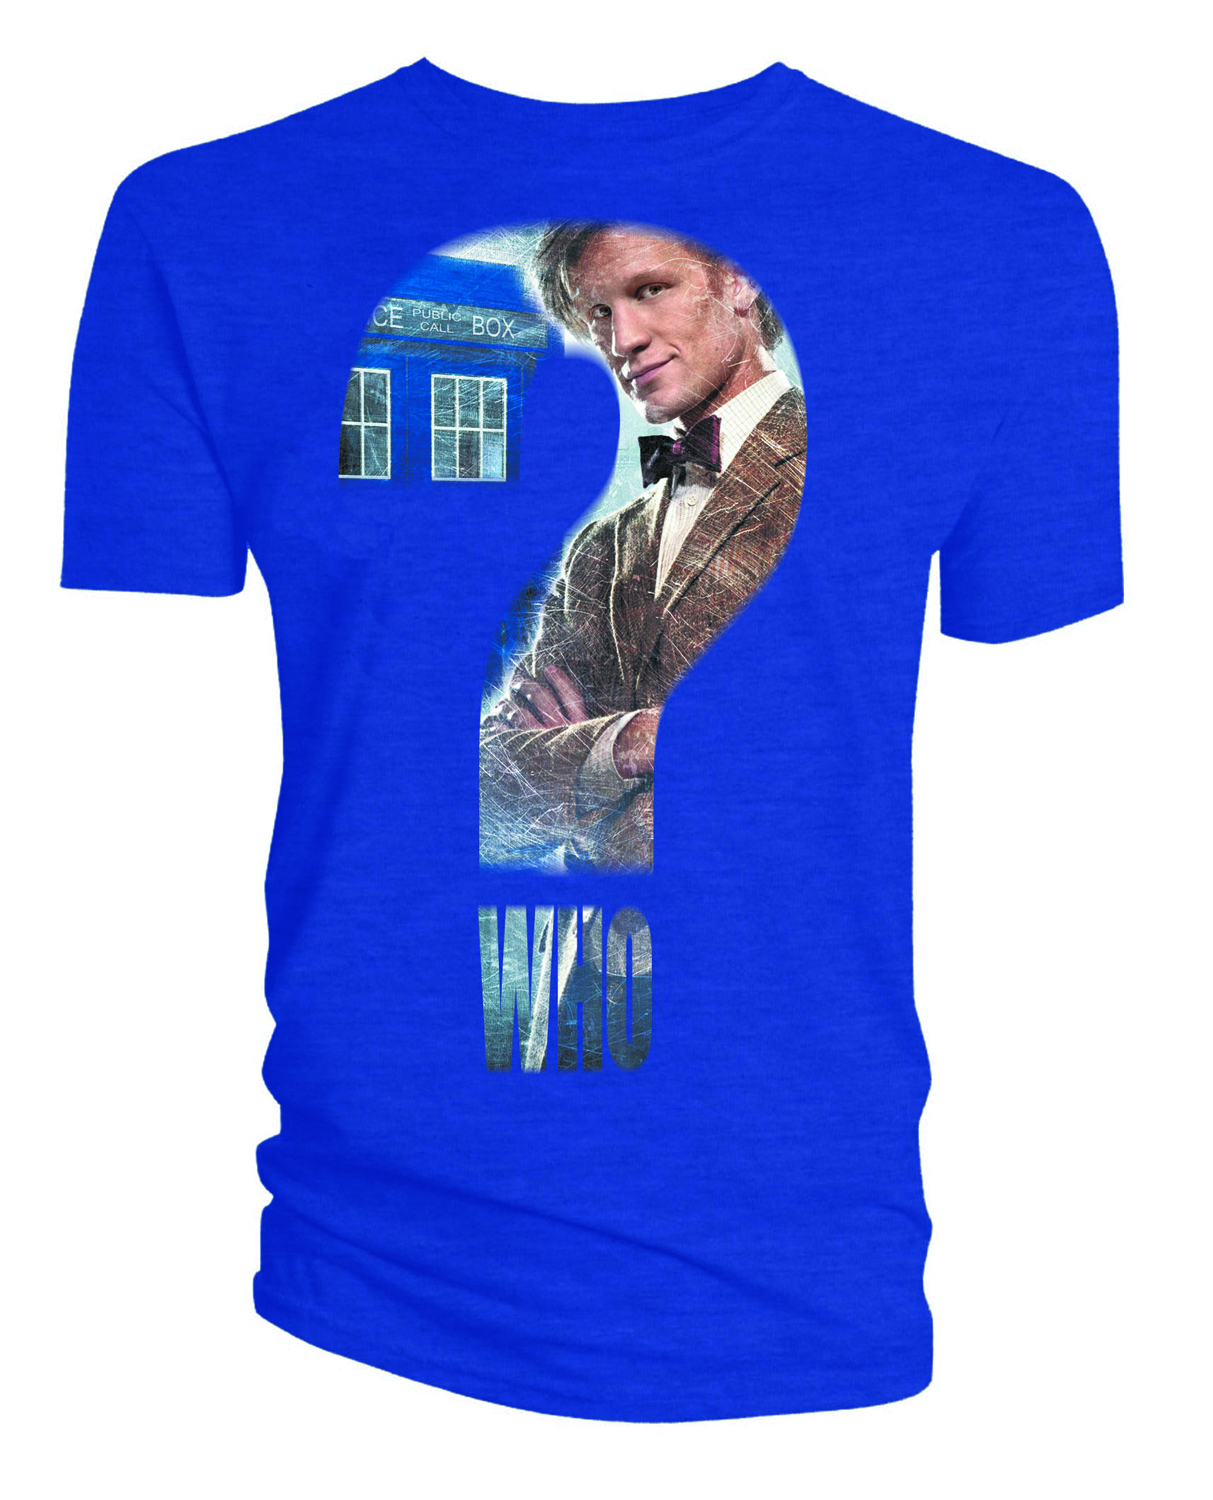 DOCTOR WHO QUESTION MARK BLUE T/S LG